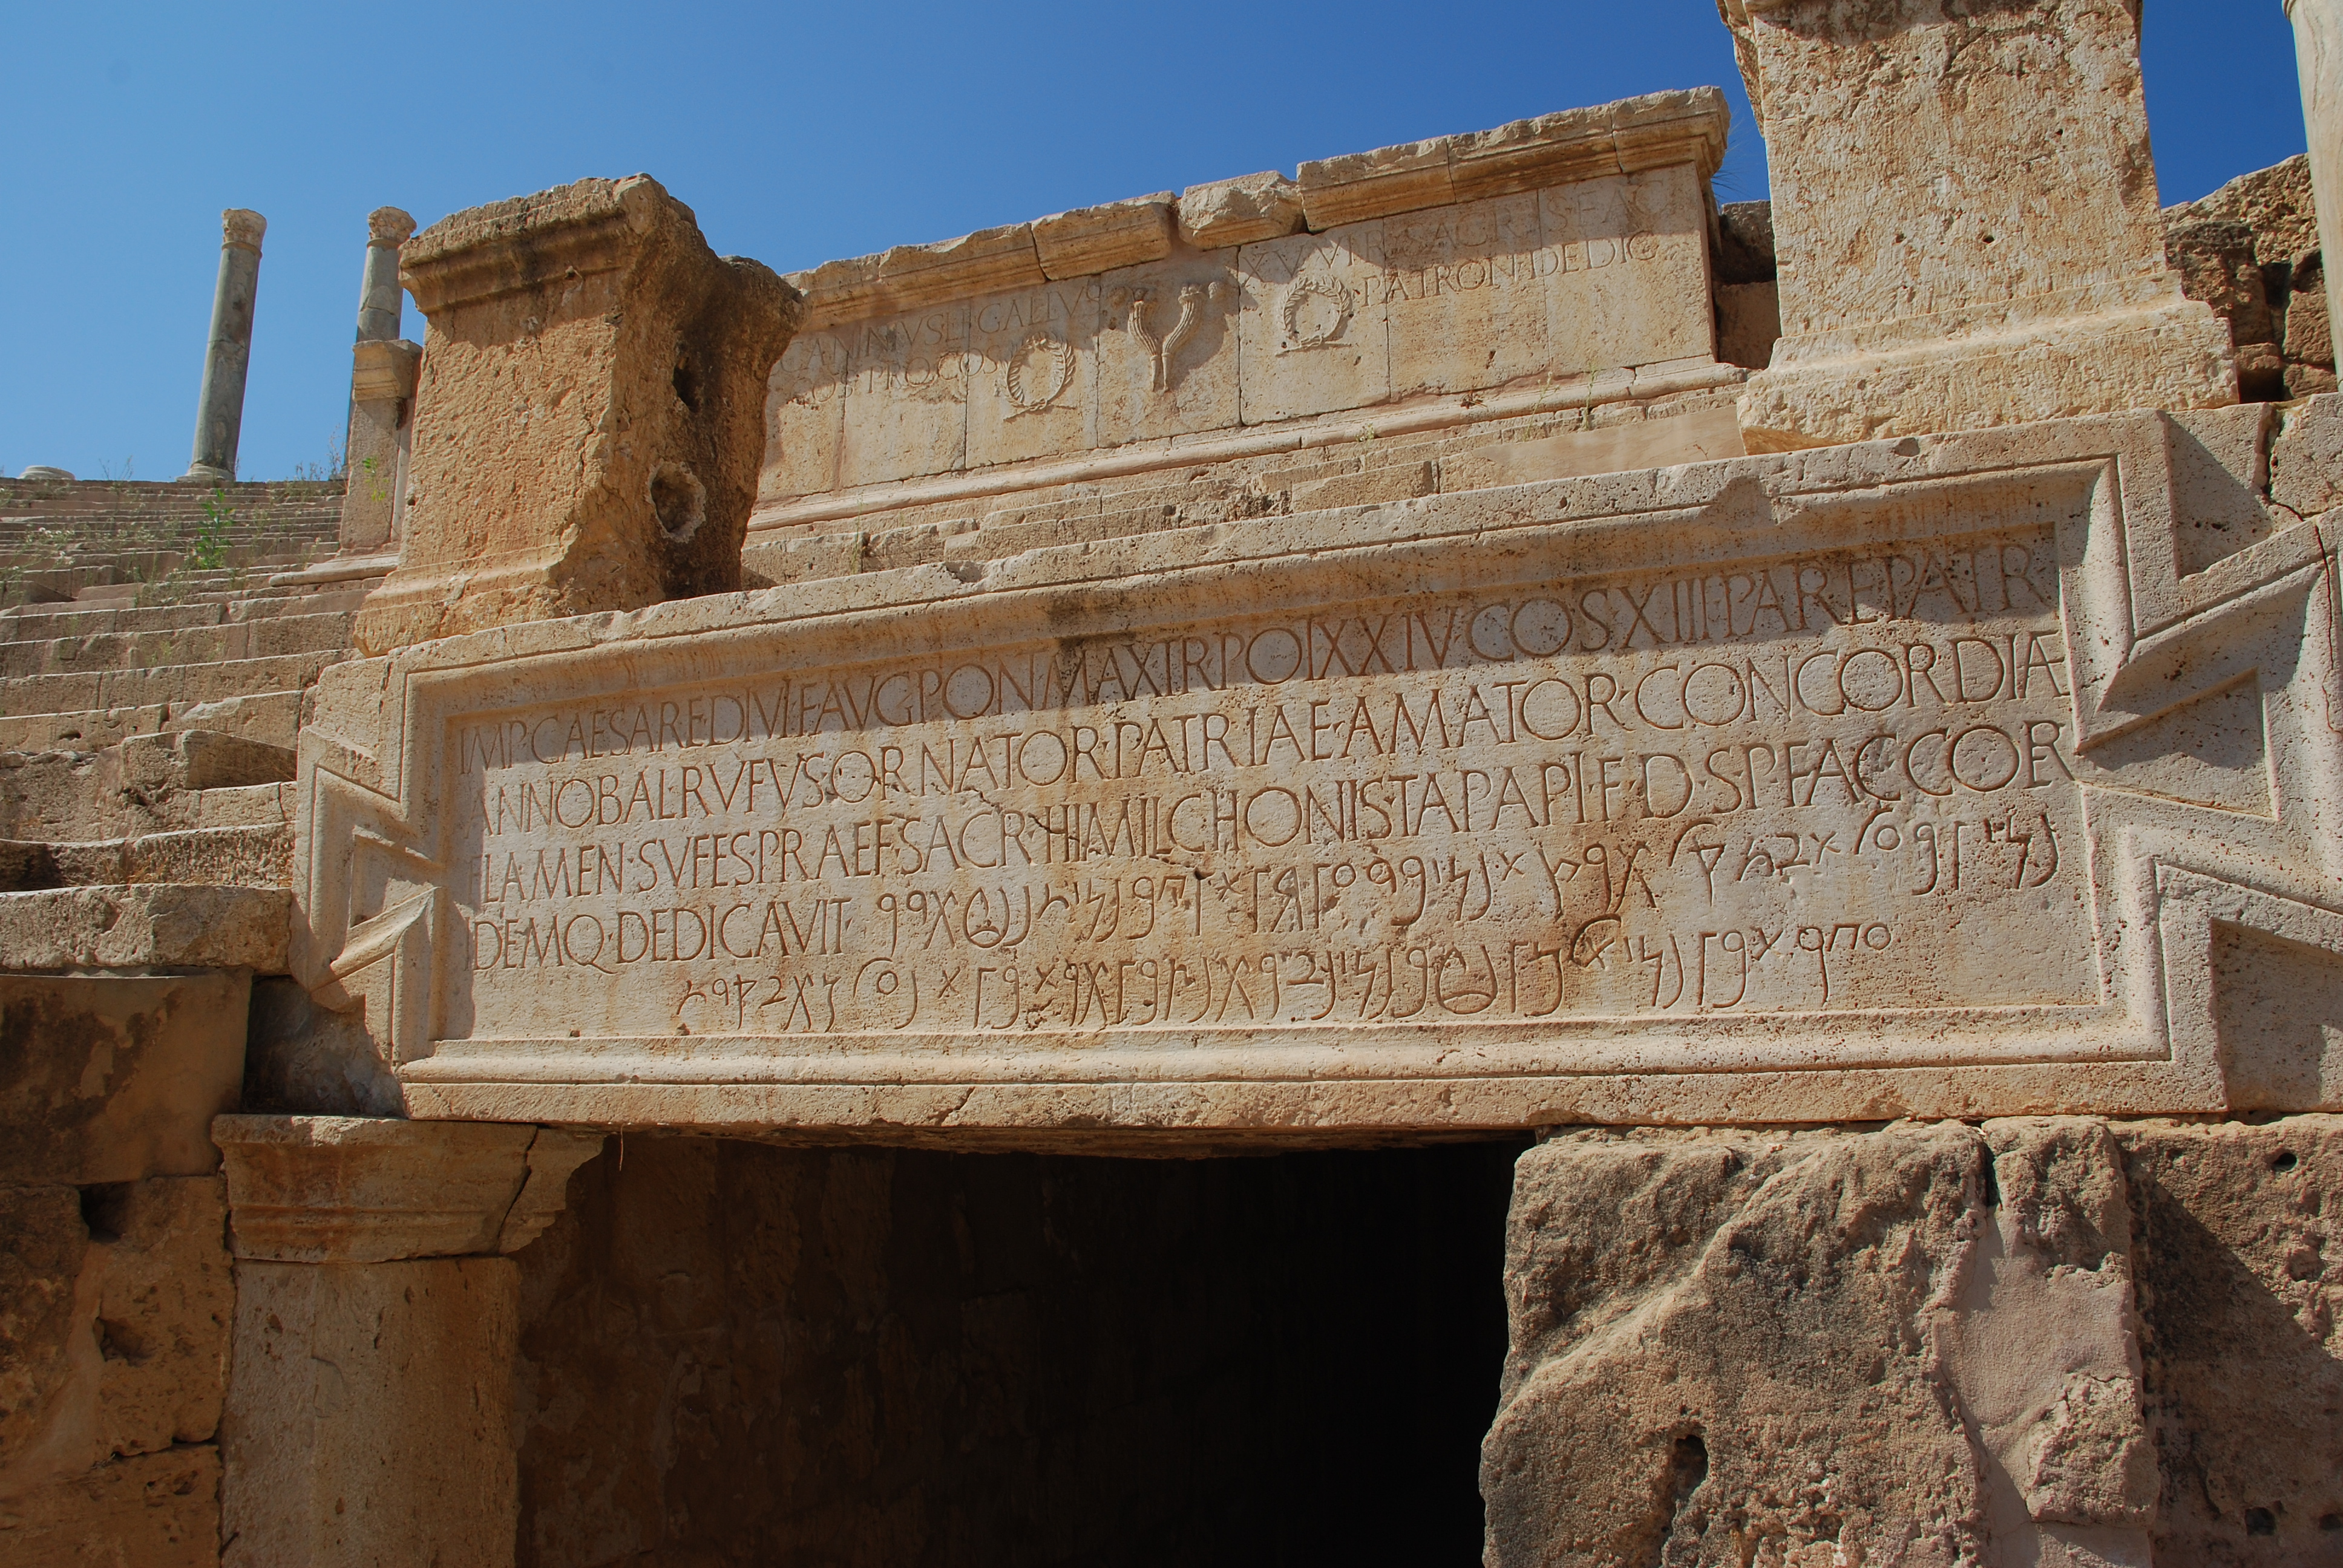 Inscription Theatre Leptis Magna Libya. By Papageizichta. https://upload.wikimedia.org/wikipedia/commons/2/2c/Inscription_Theatre_Leptis_Magna_Libya.JPG